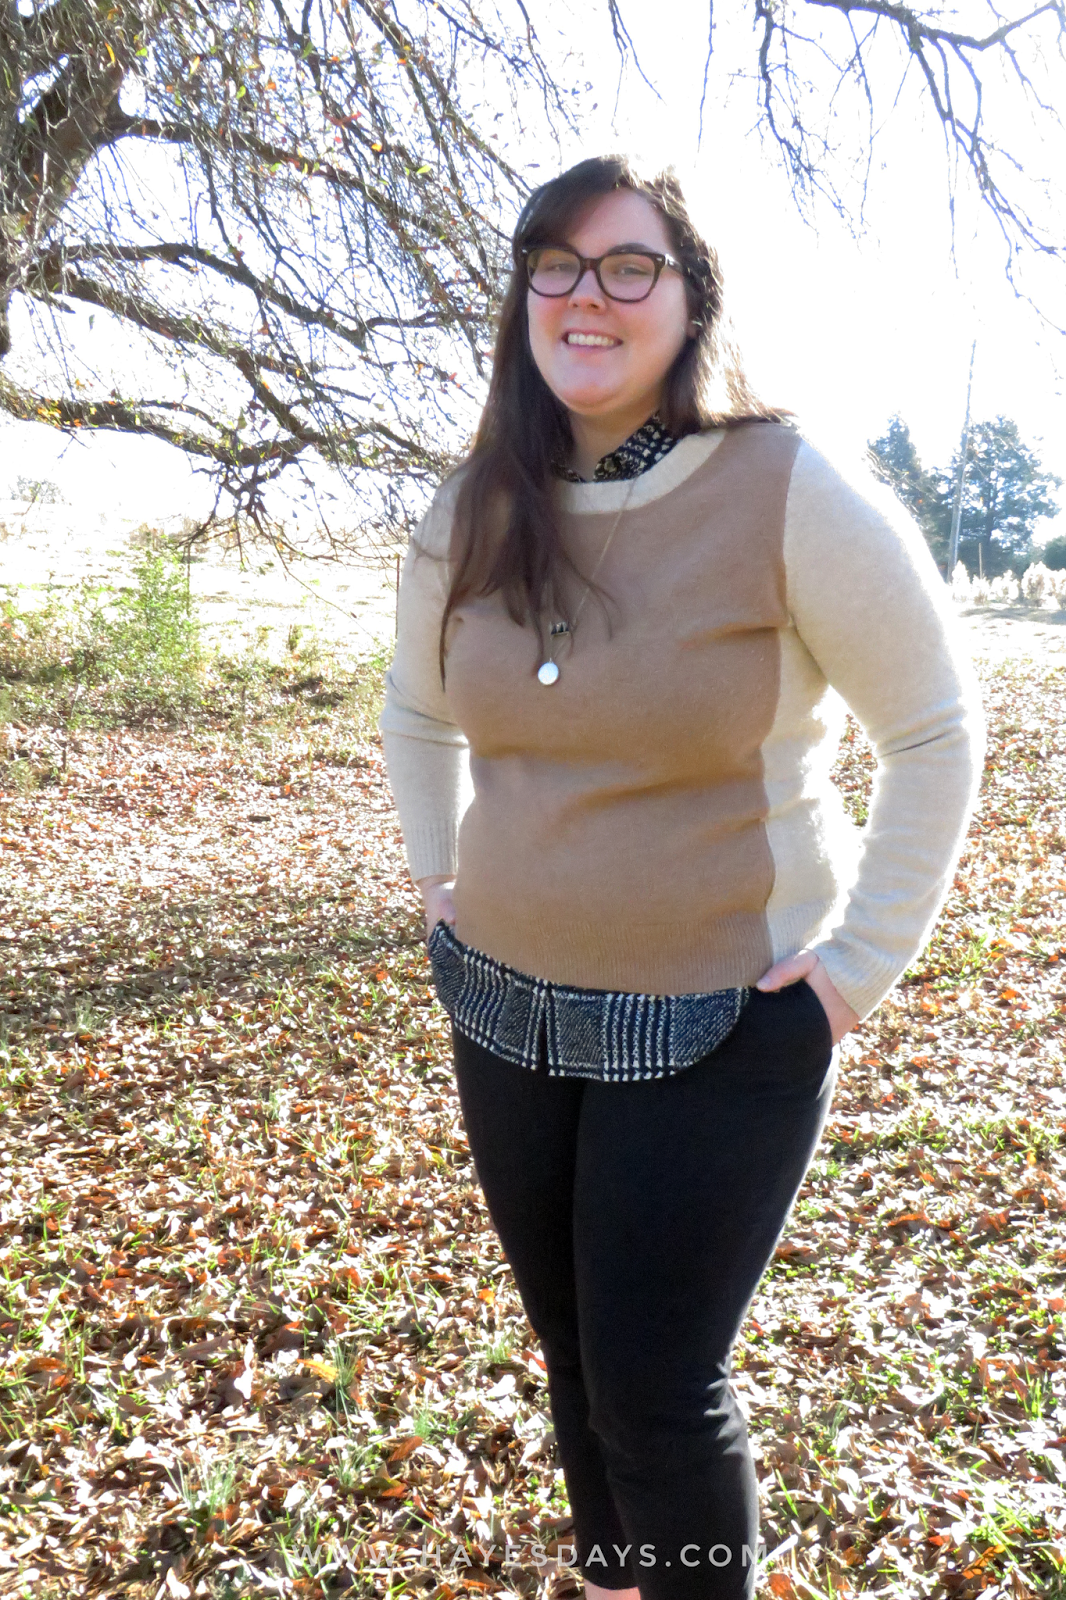 remixing a sleeveless blouse for winter :: www.hayesdays.com